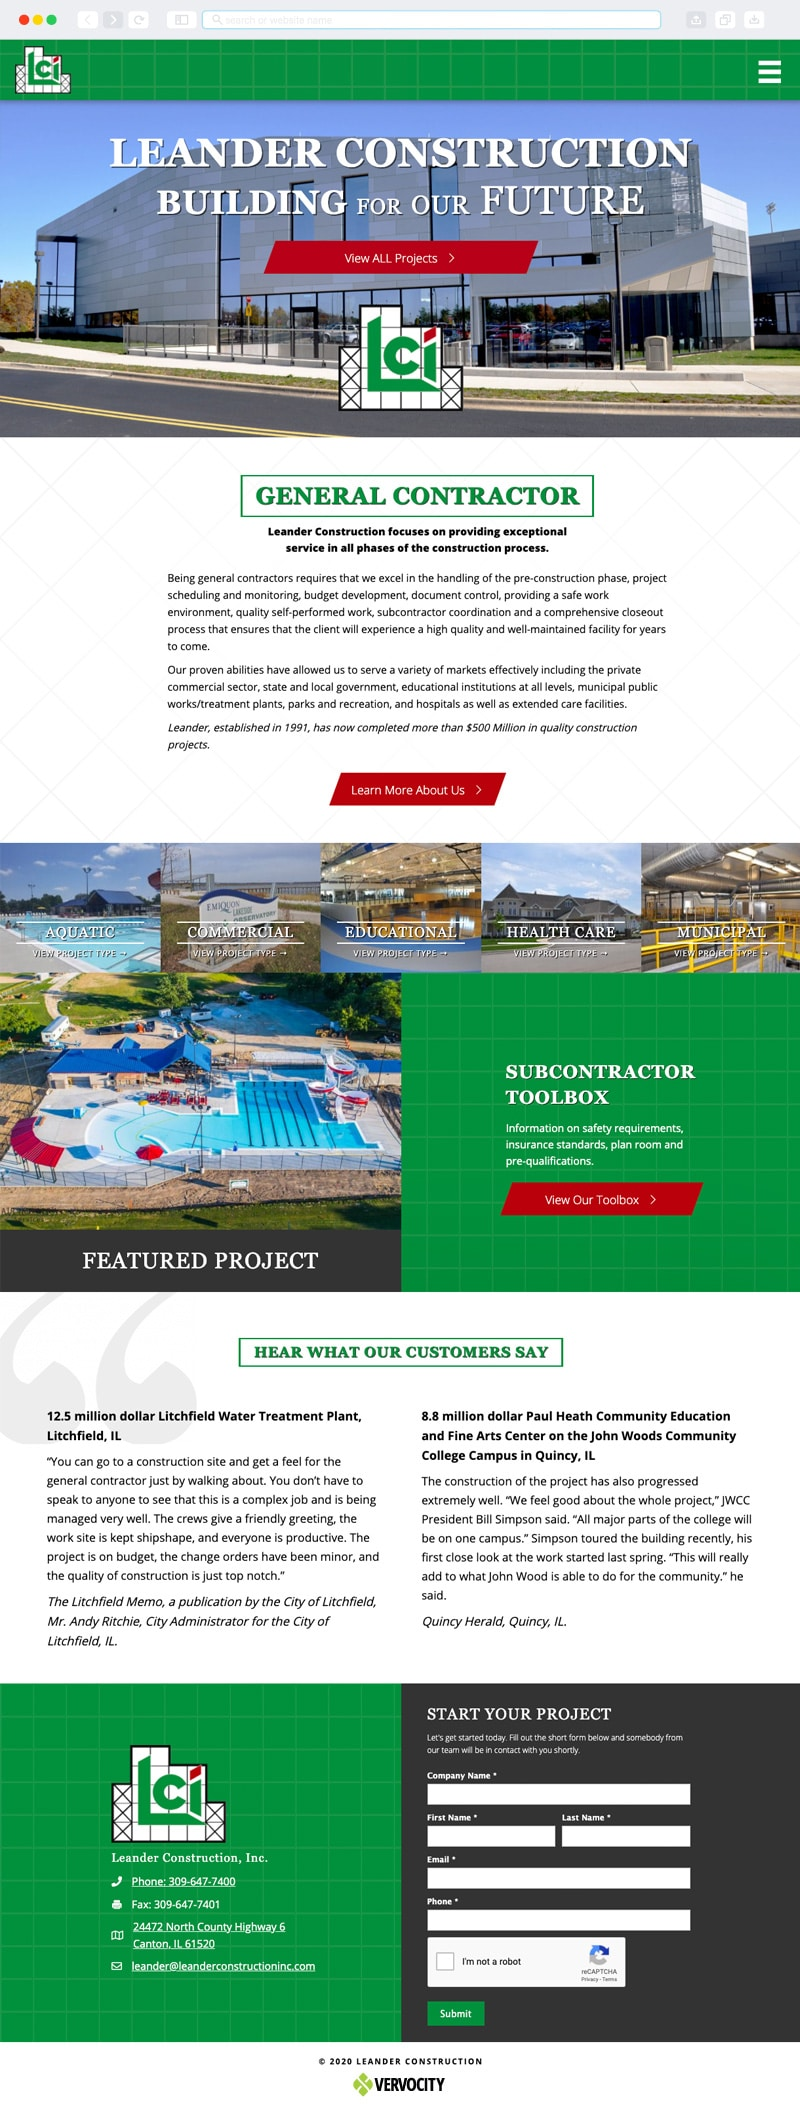 Leander Construction, Inc. Homepage | Vervocity